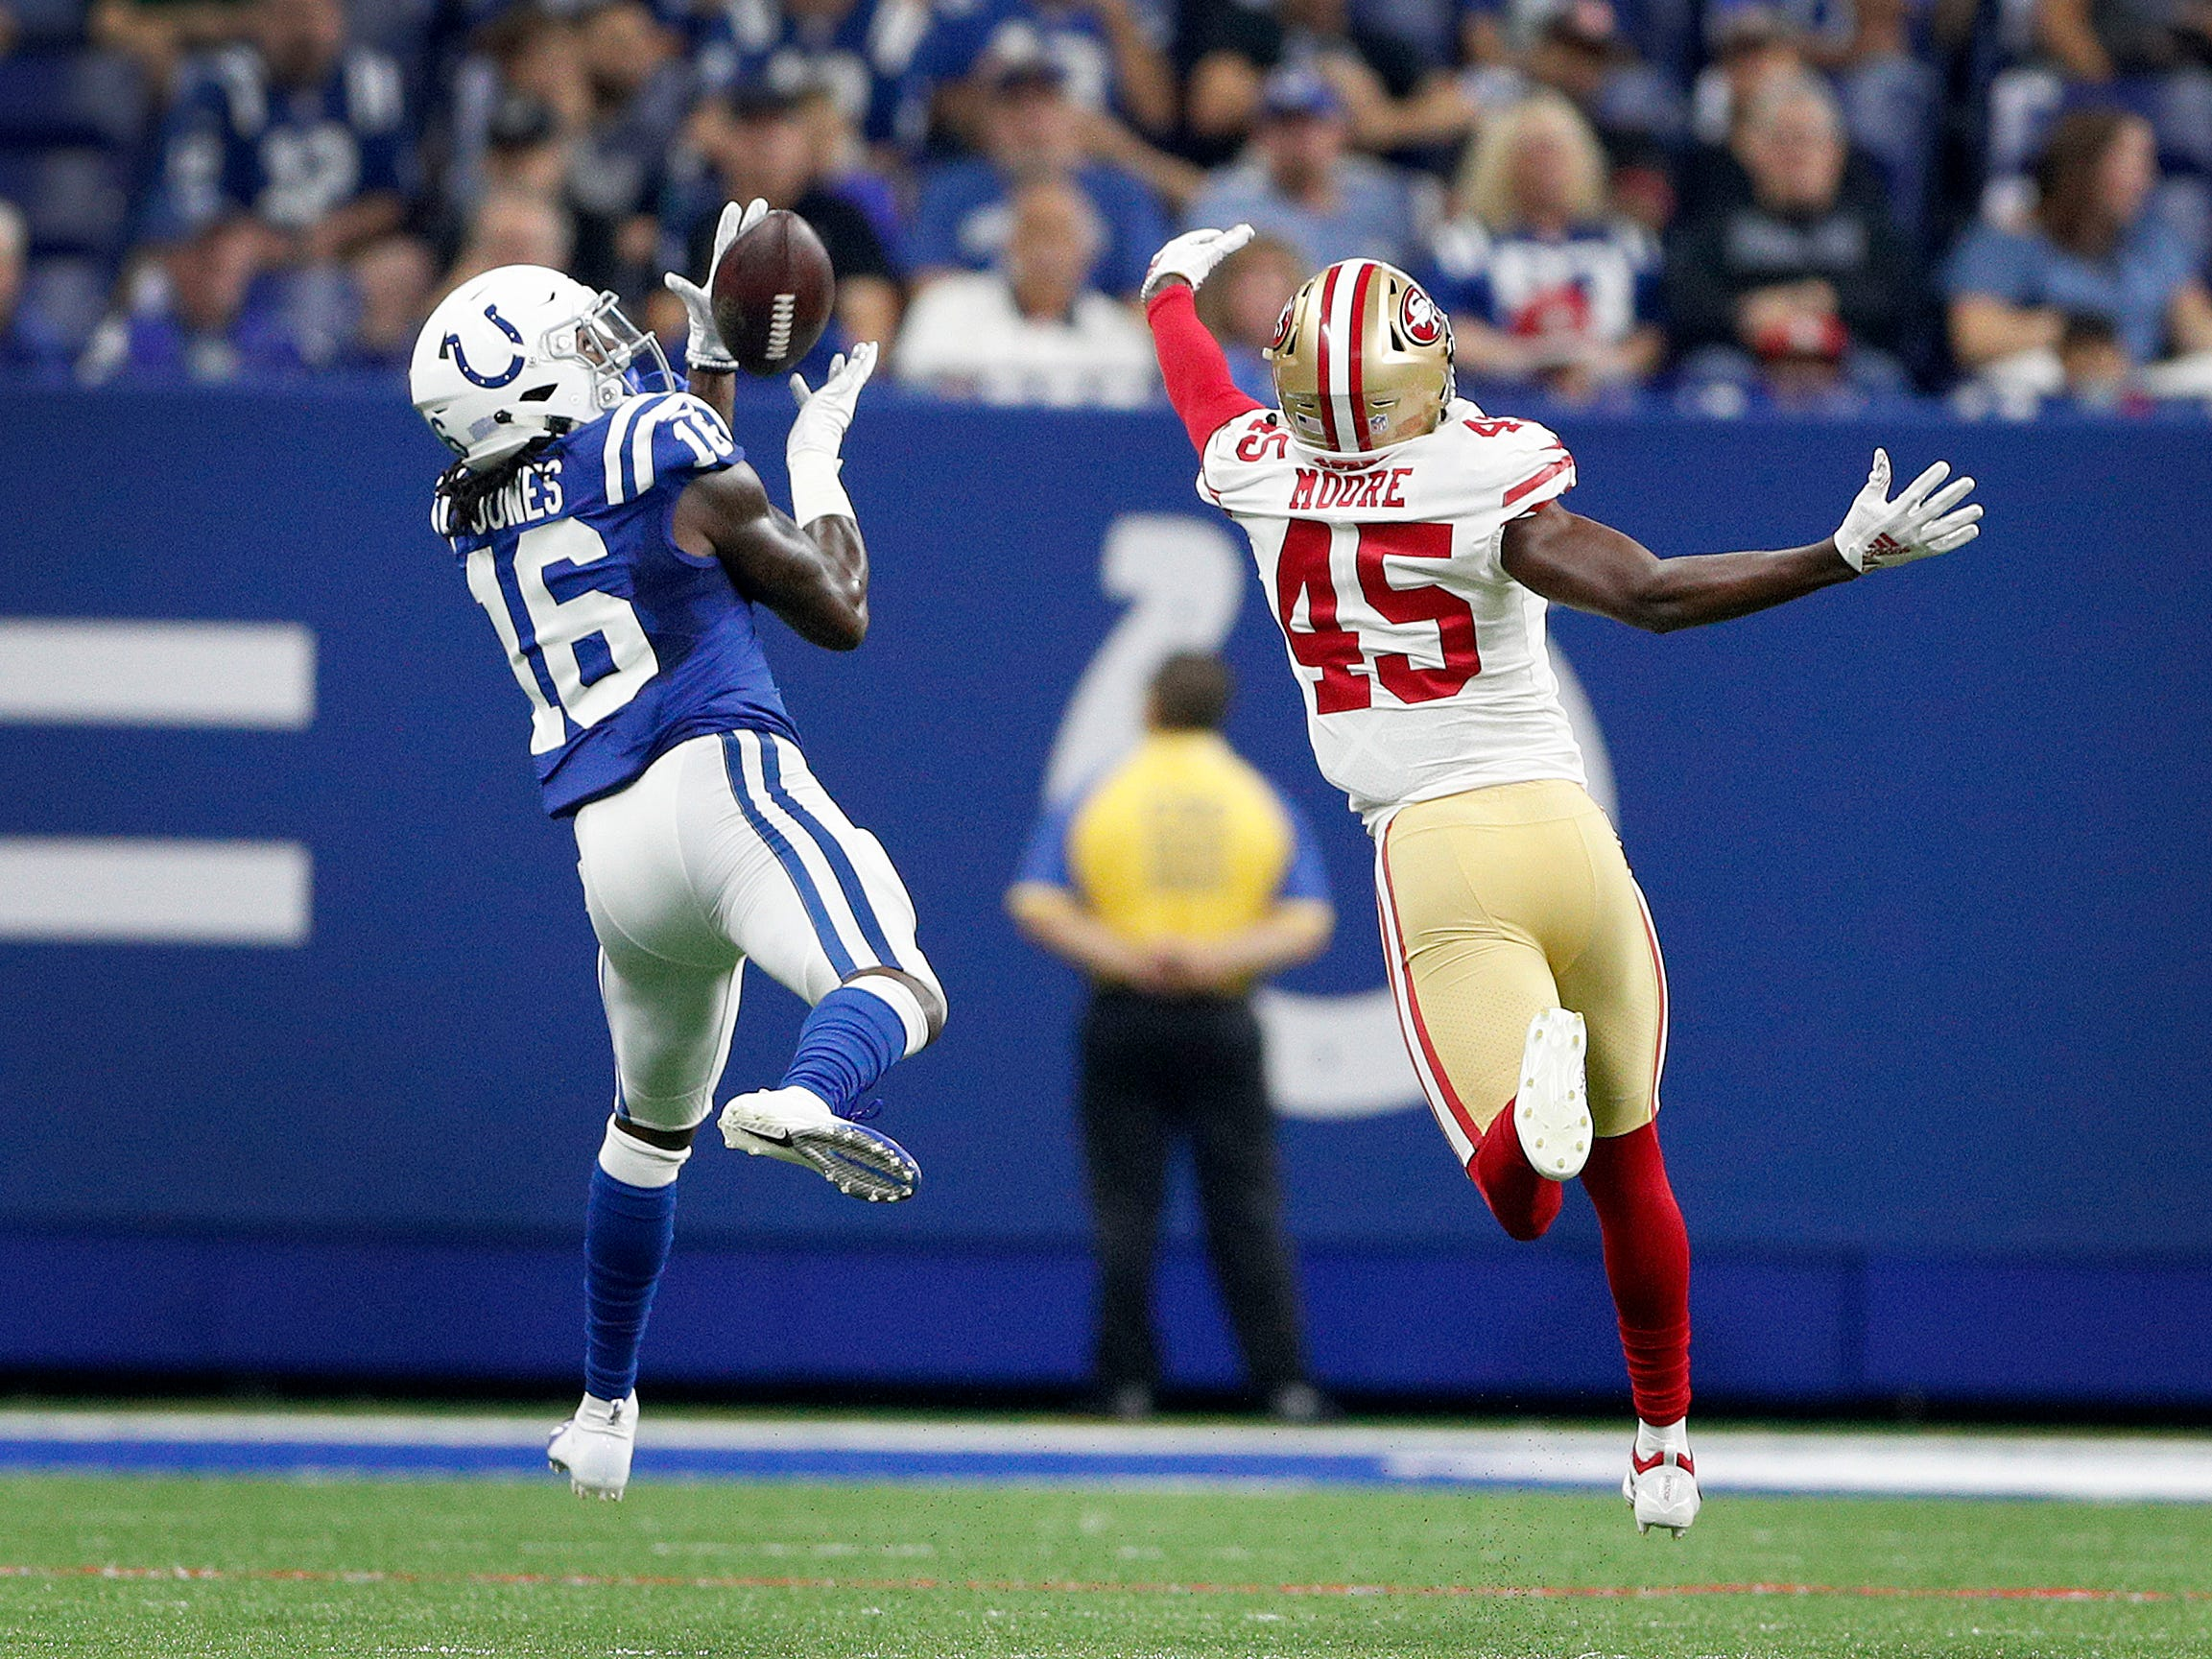 Indianapolis Colts wide receiver Seantavius Jones (16) hauls in a long pass from Jacoby Brissett burning San Francisco 49ers defensive back Tarvarius Moore (45) in the second half of their preseason football game at Lucas Oil Stadium Saturday, August 25, 2018. The Colts defeated the 49ers 23-17.